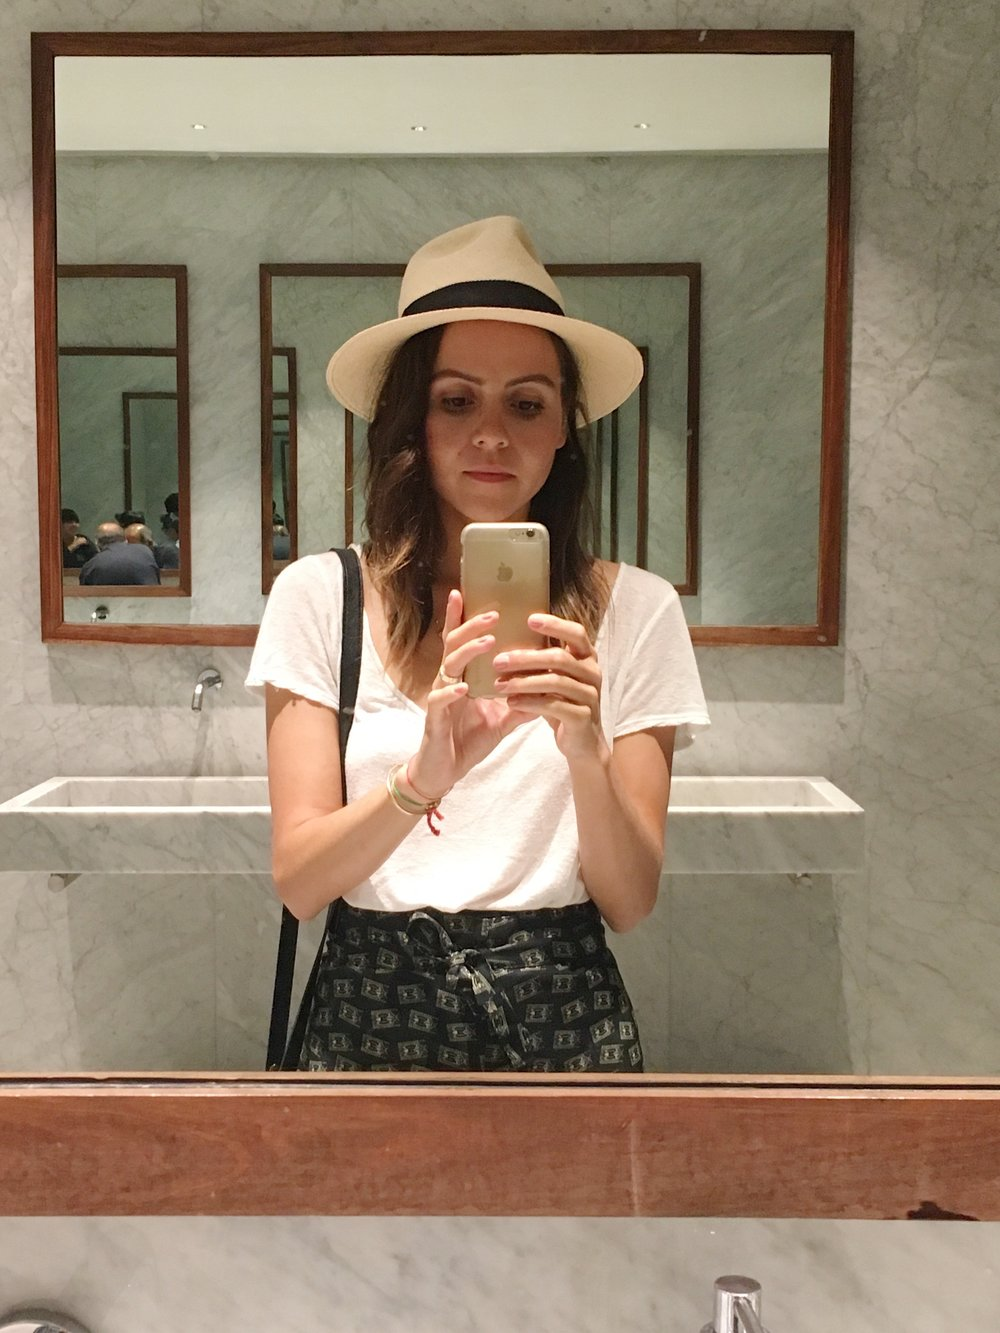 Bathroom selfie because the mirrors were huge and pretty.